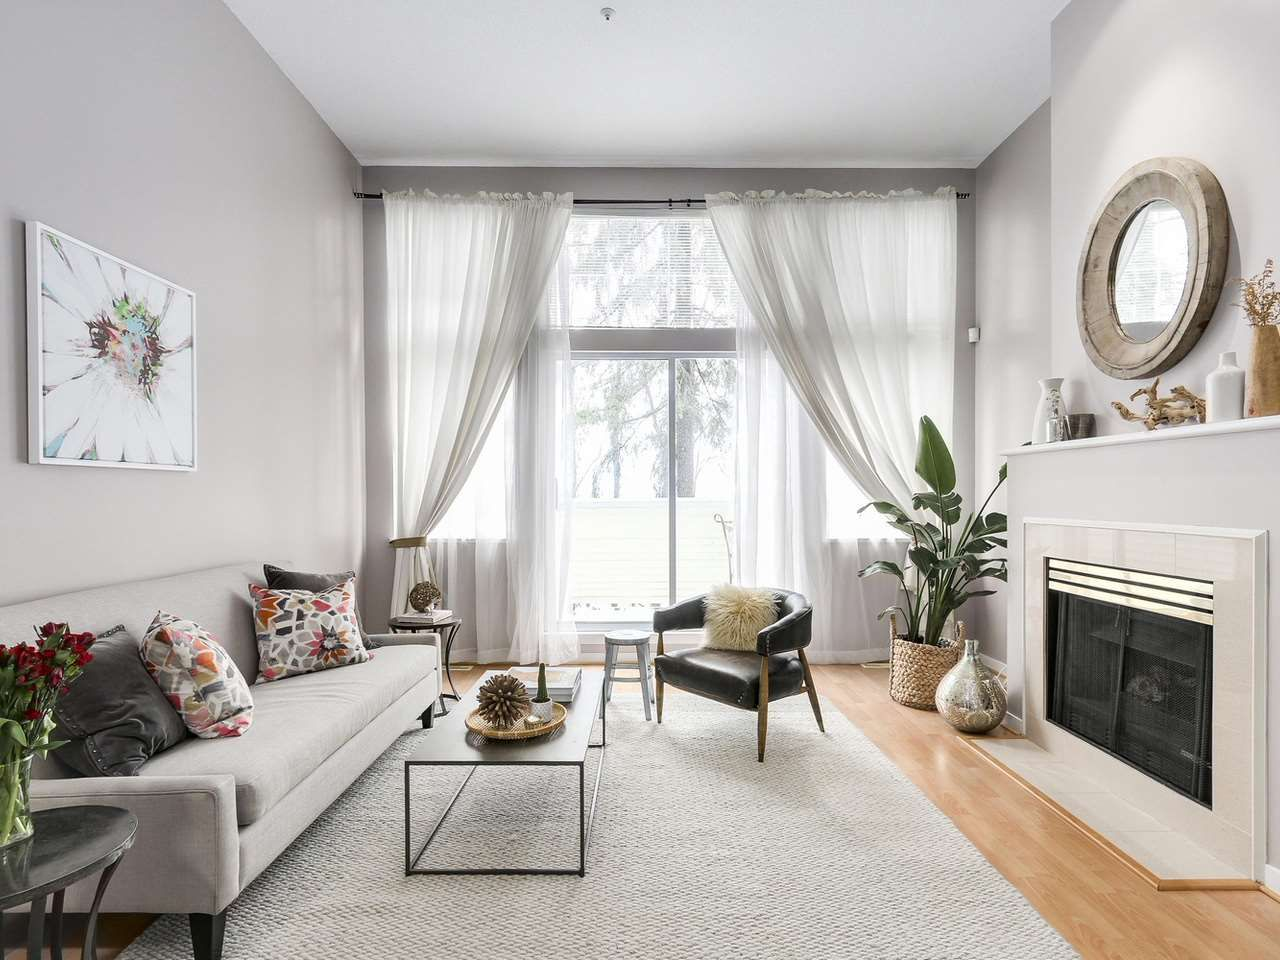 Main Photo: 4 3586 RAINIER PLACE in Vancouver: Champlain Heights Townhouse for sale (Vancouver East)  : MLS®# R2150720